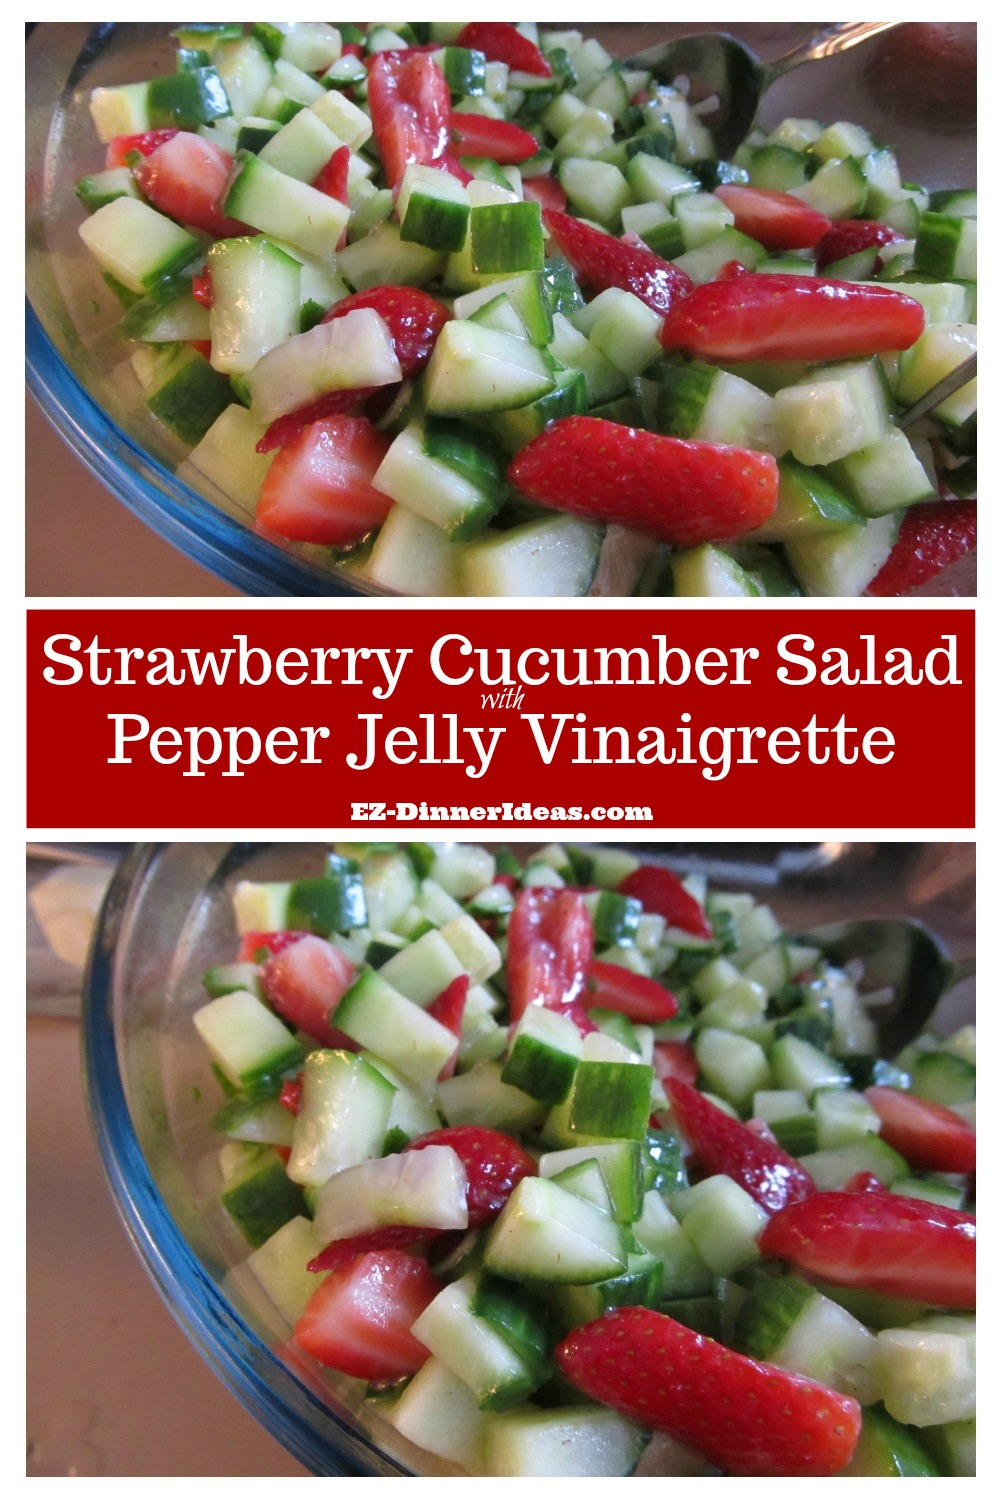 Strawberry salad recipe is a beautiful, refreshing and yummy salad using the ingredients in the season.  How could you resist it?